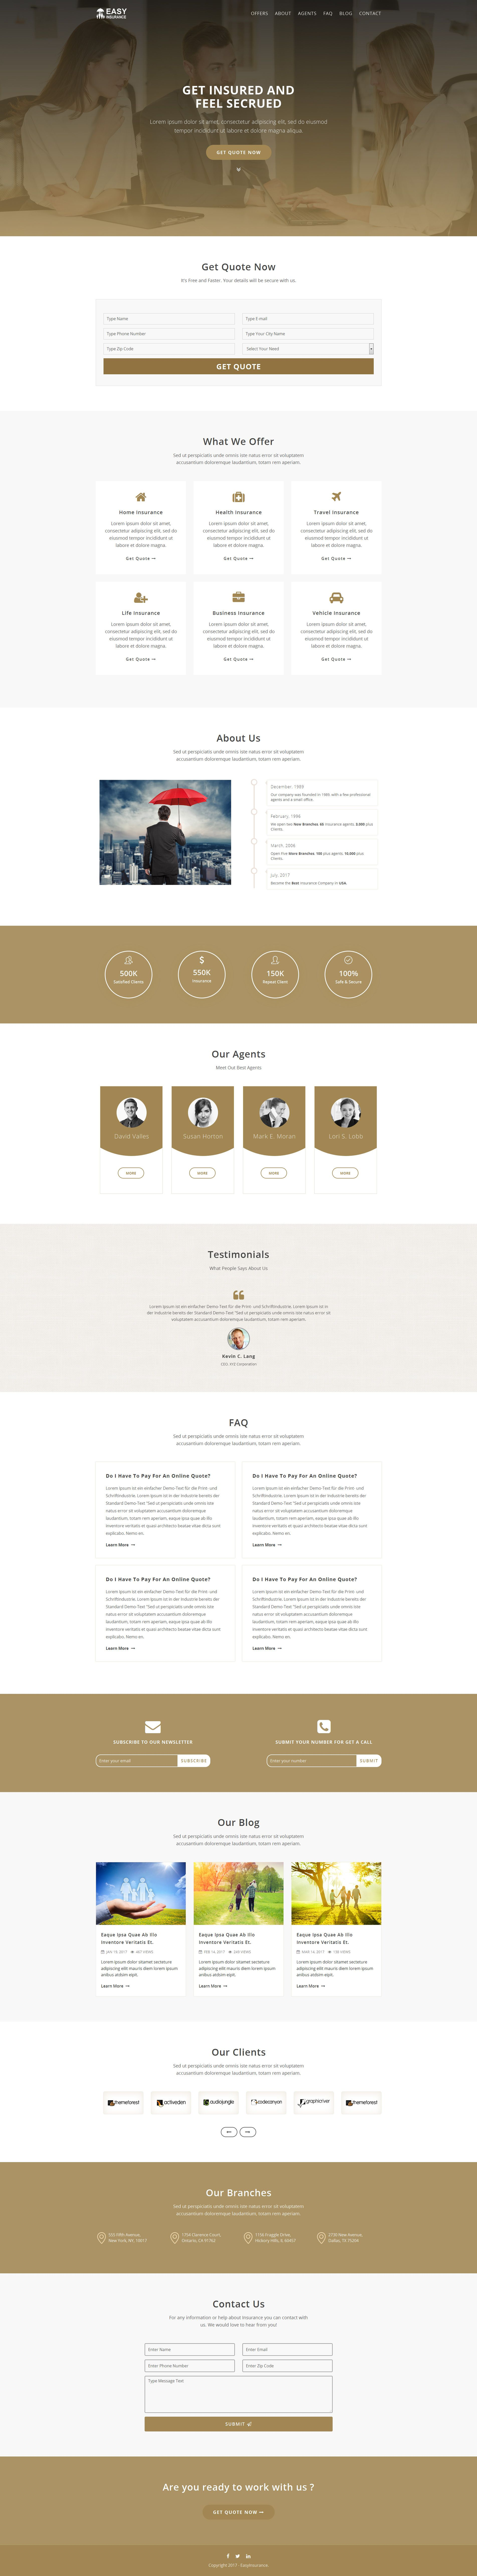 EasyInsurance - Insurance Company Website Templates. This ...